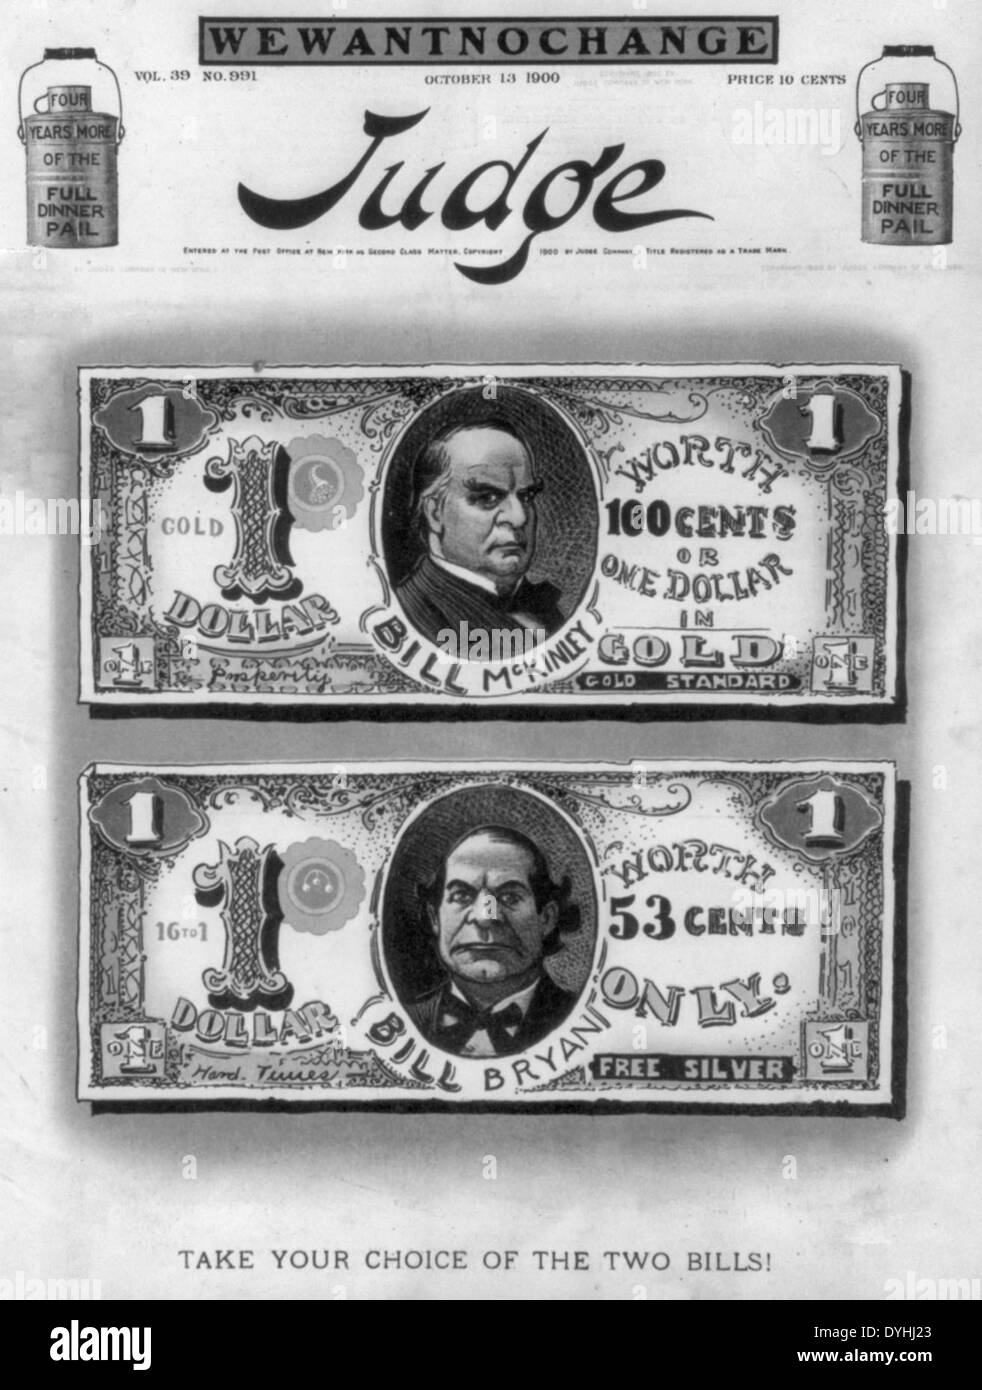 Take your choice of the two bills! Political cartoon showing McKinley and Bryan on 1 dollar bills, respectively 'worth one dollar in gold' and 'worth 53 cents only - free silver.' 1900 USA Presidential Election - Stock Image